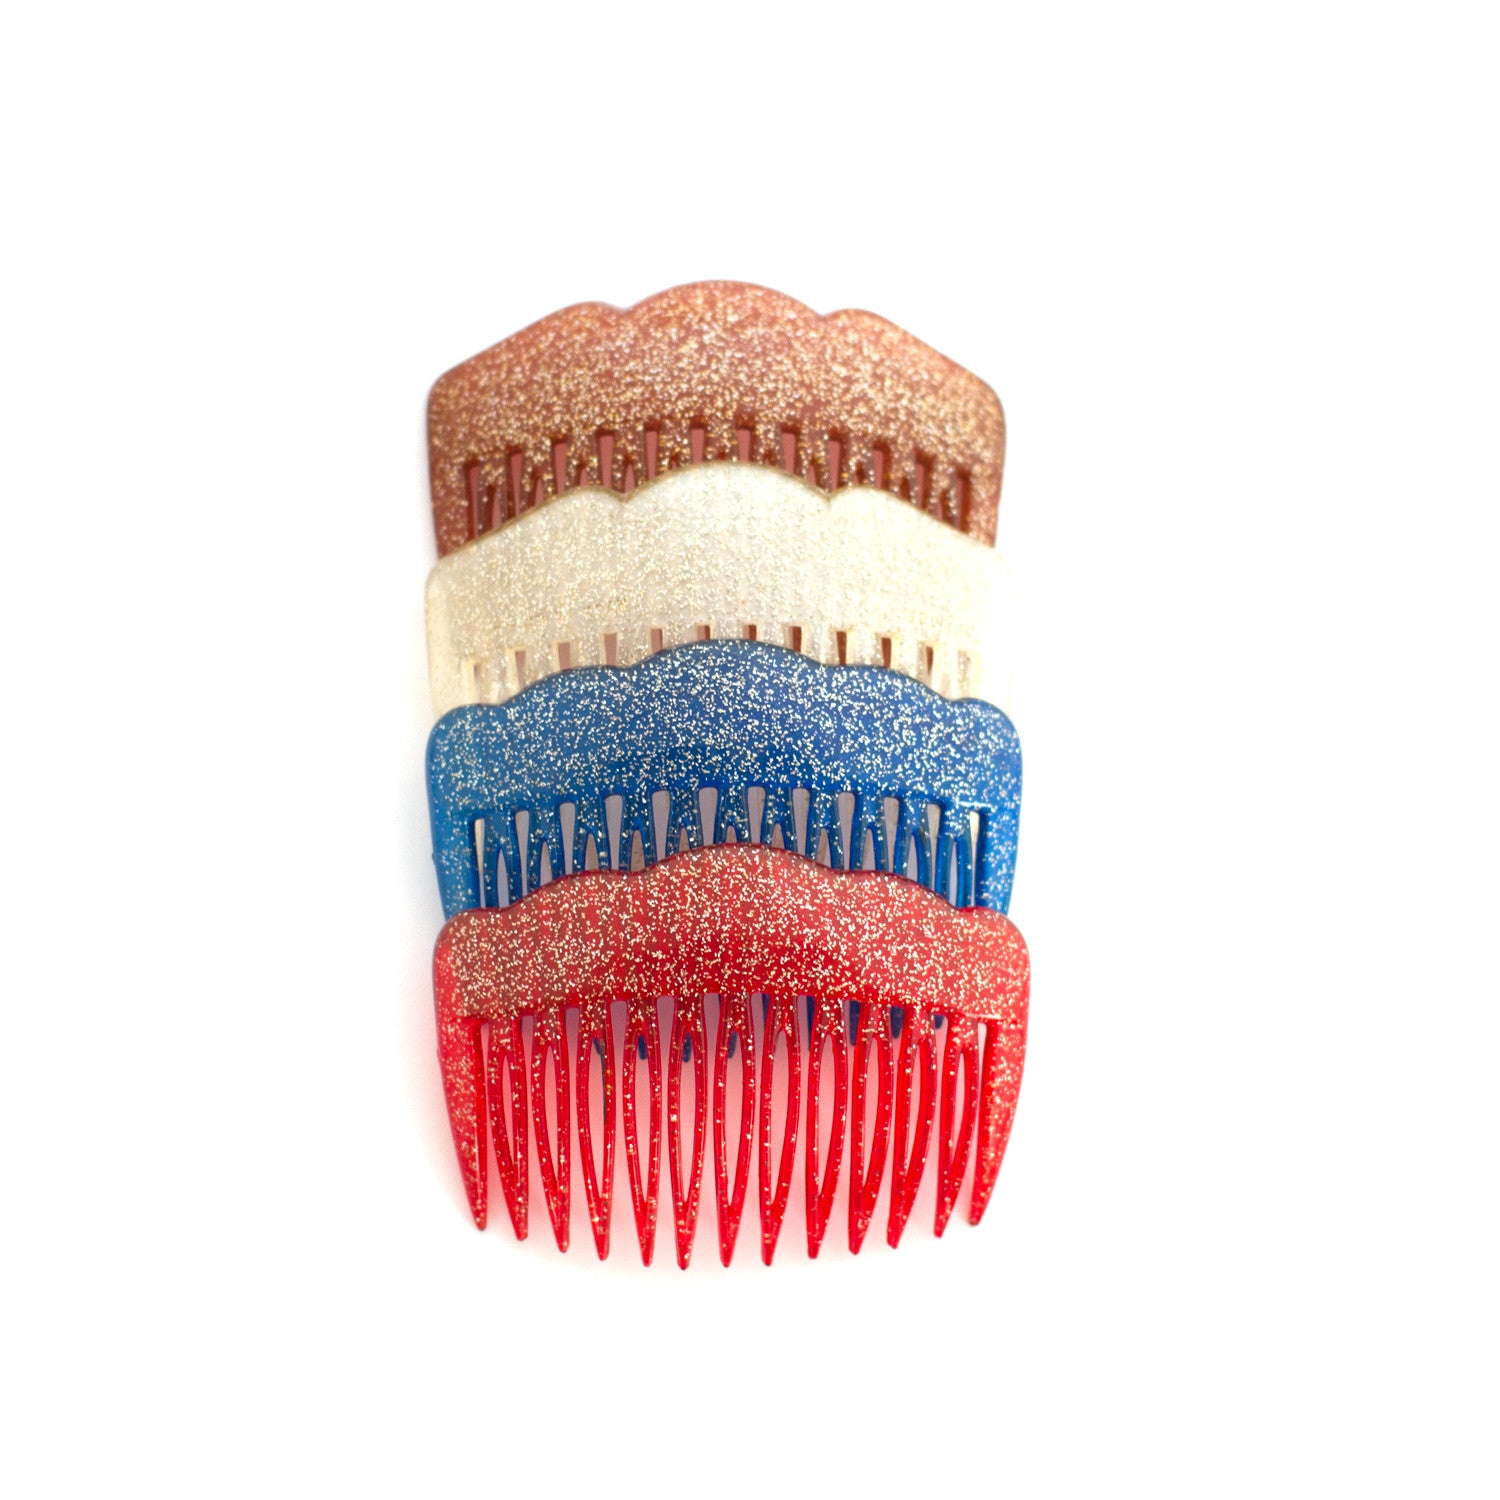 vintage french hair combs - pin up beauty - rockabilly - retro hair accessories